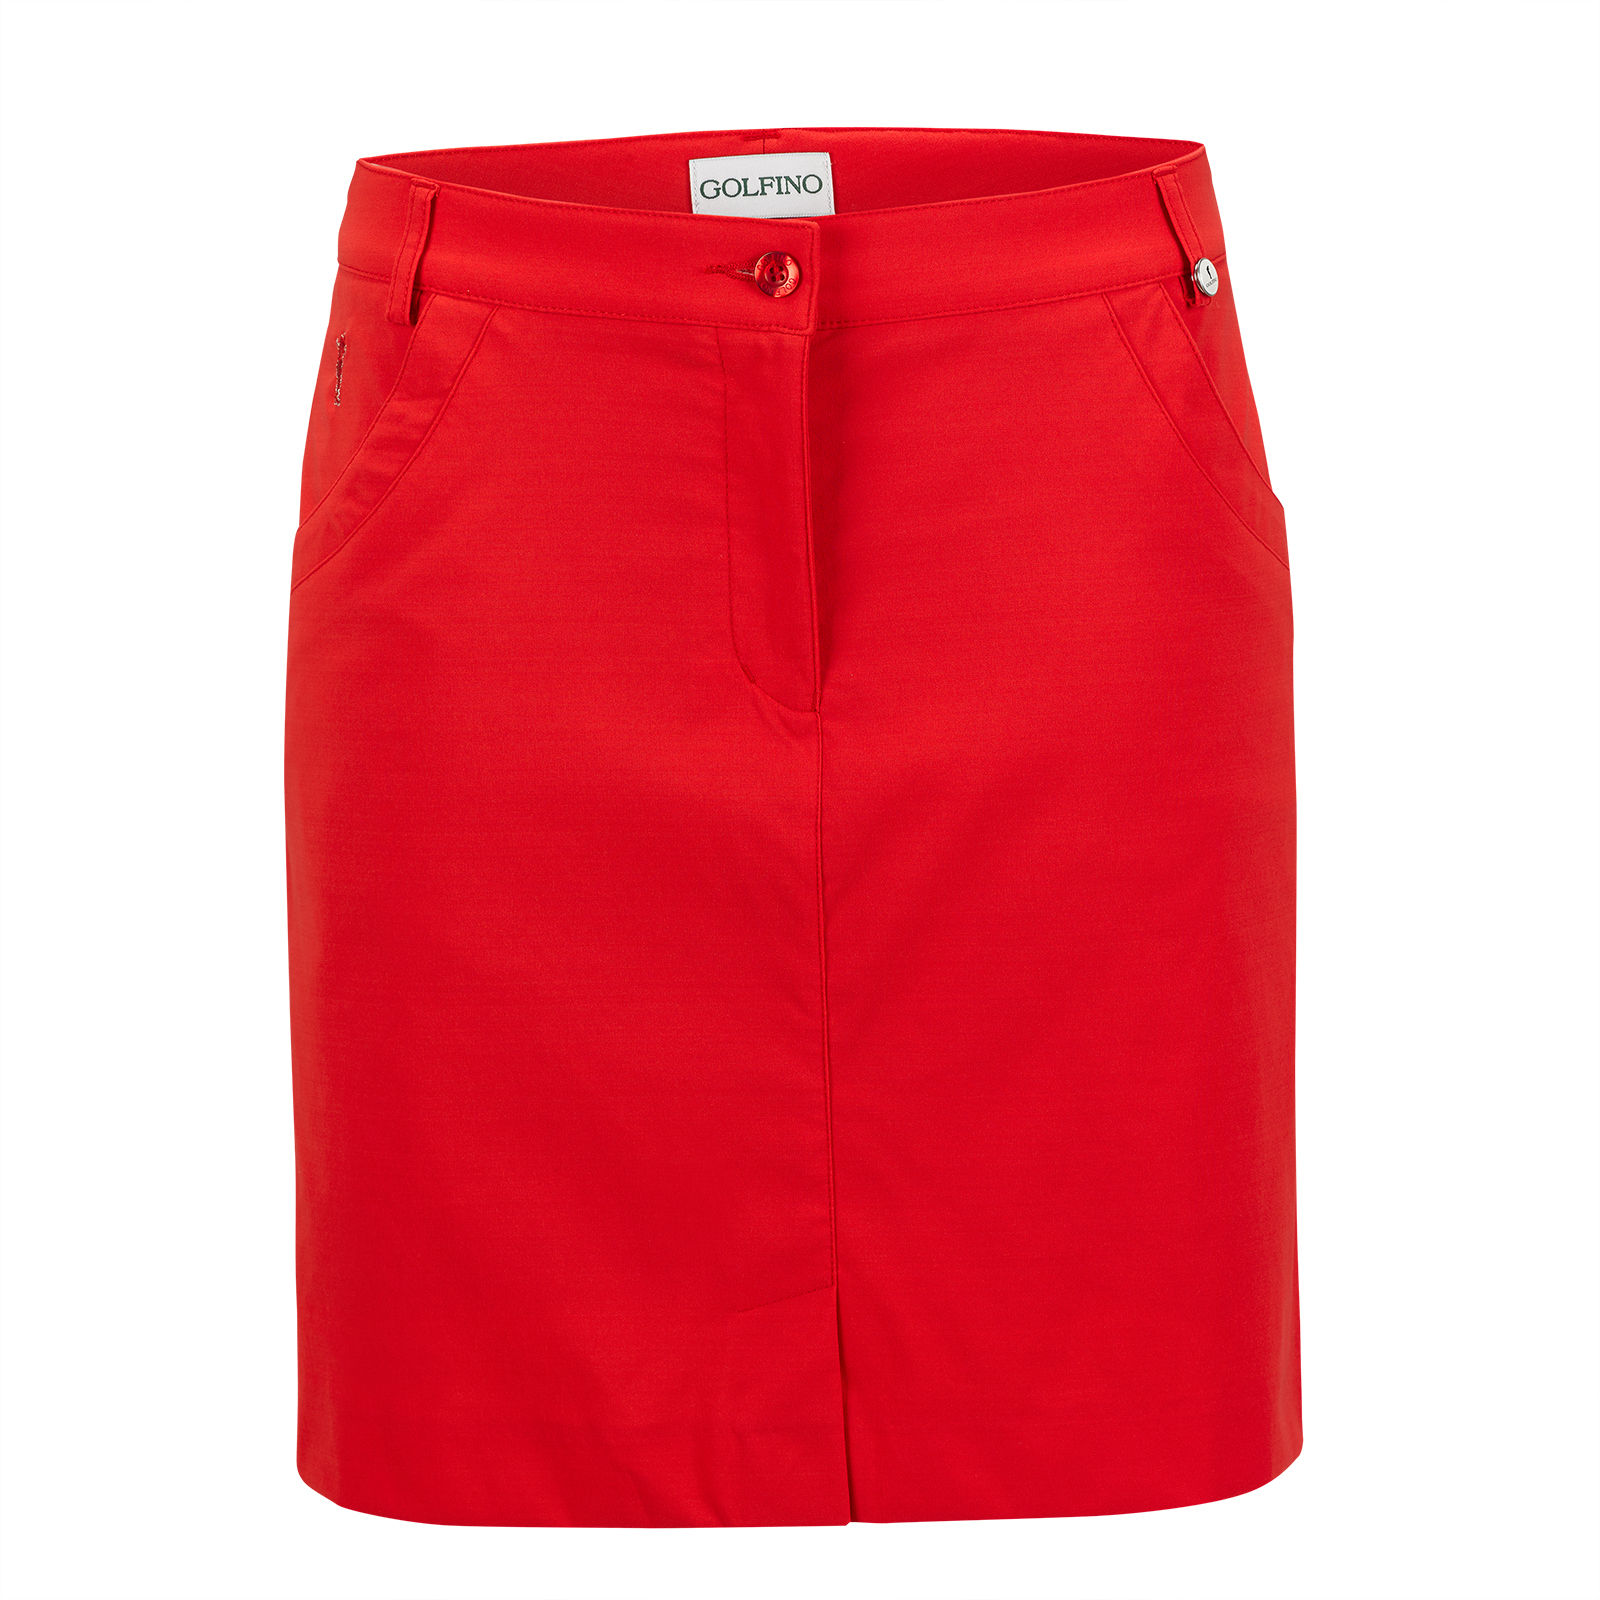 Damen Medium Golfskort aus Techno-Stretch mit Sun Protection